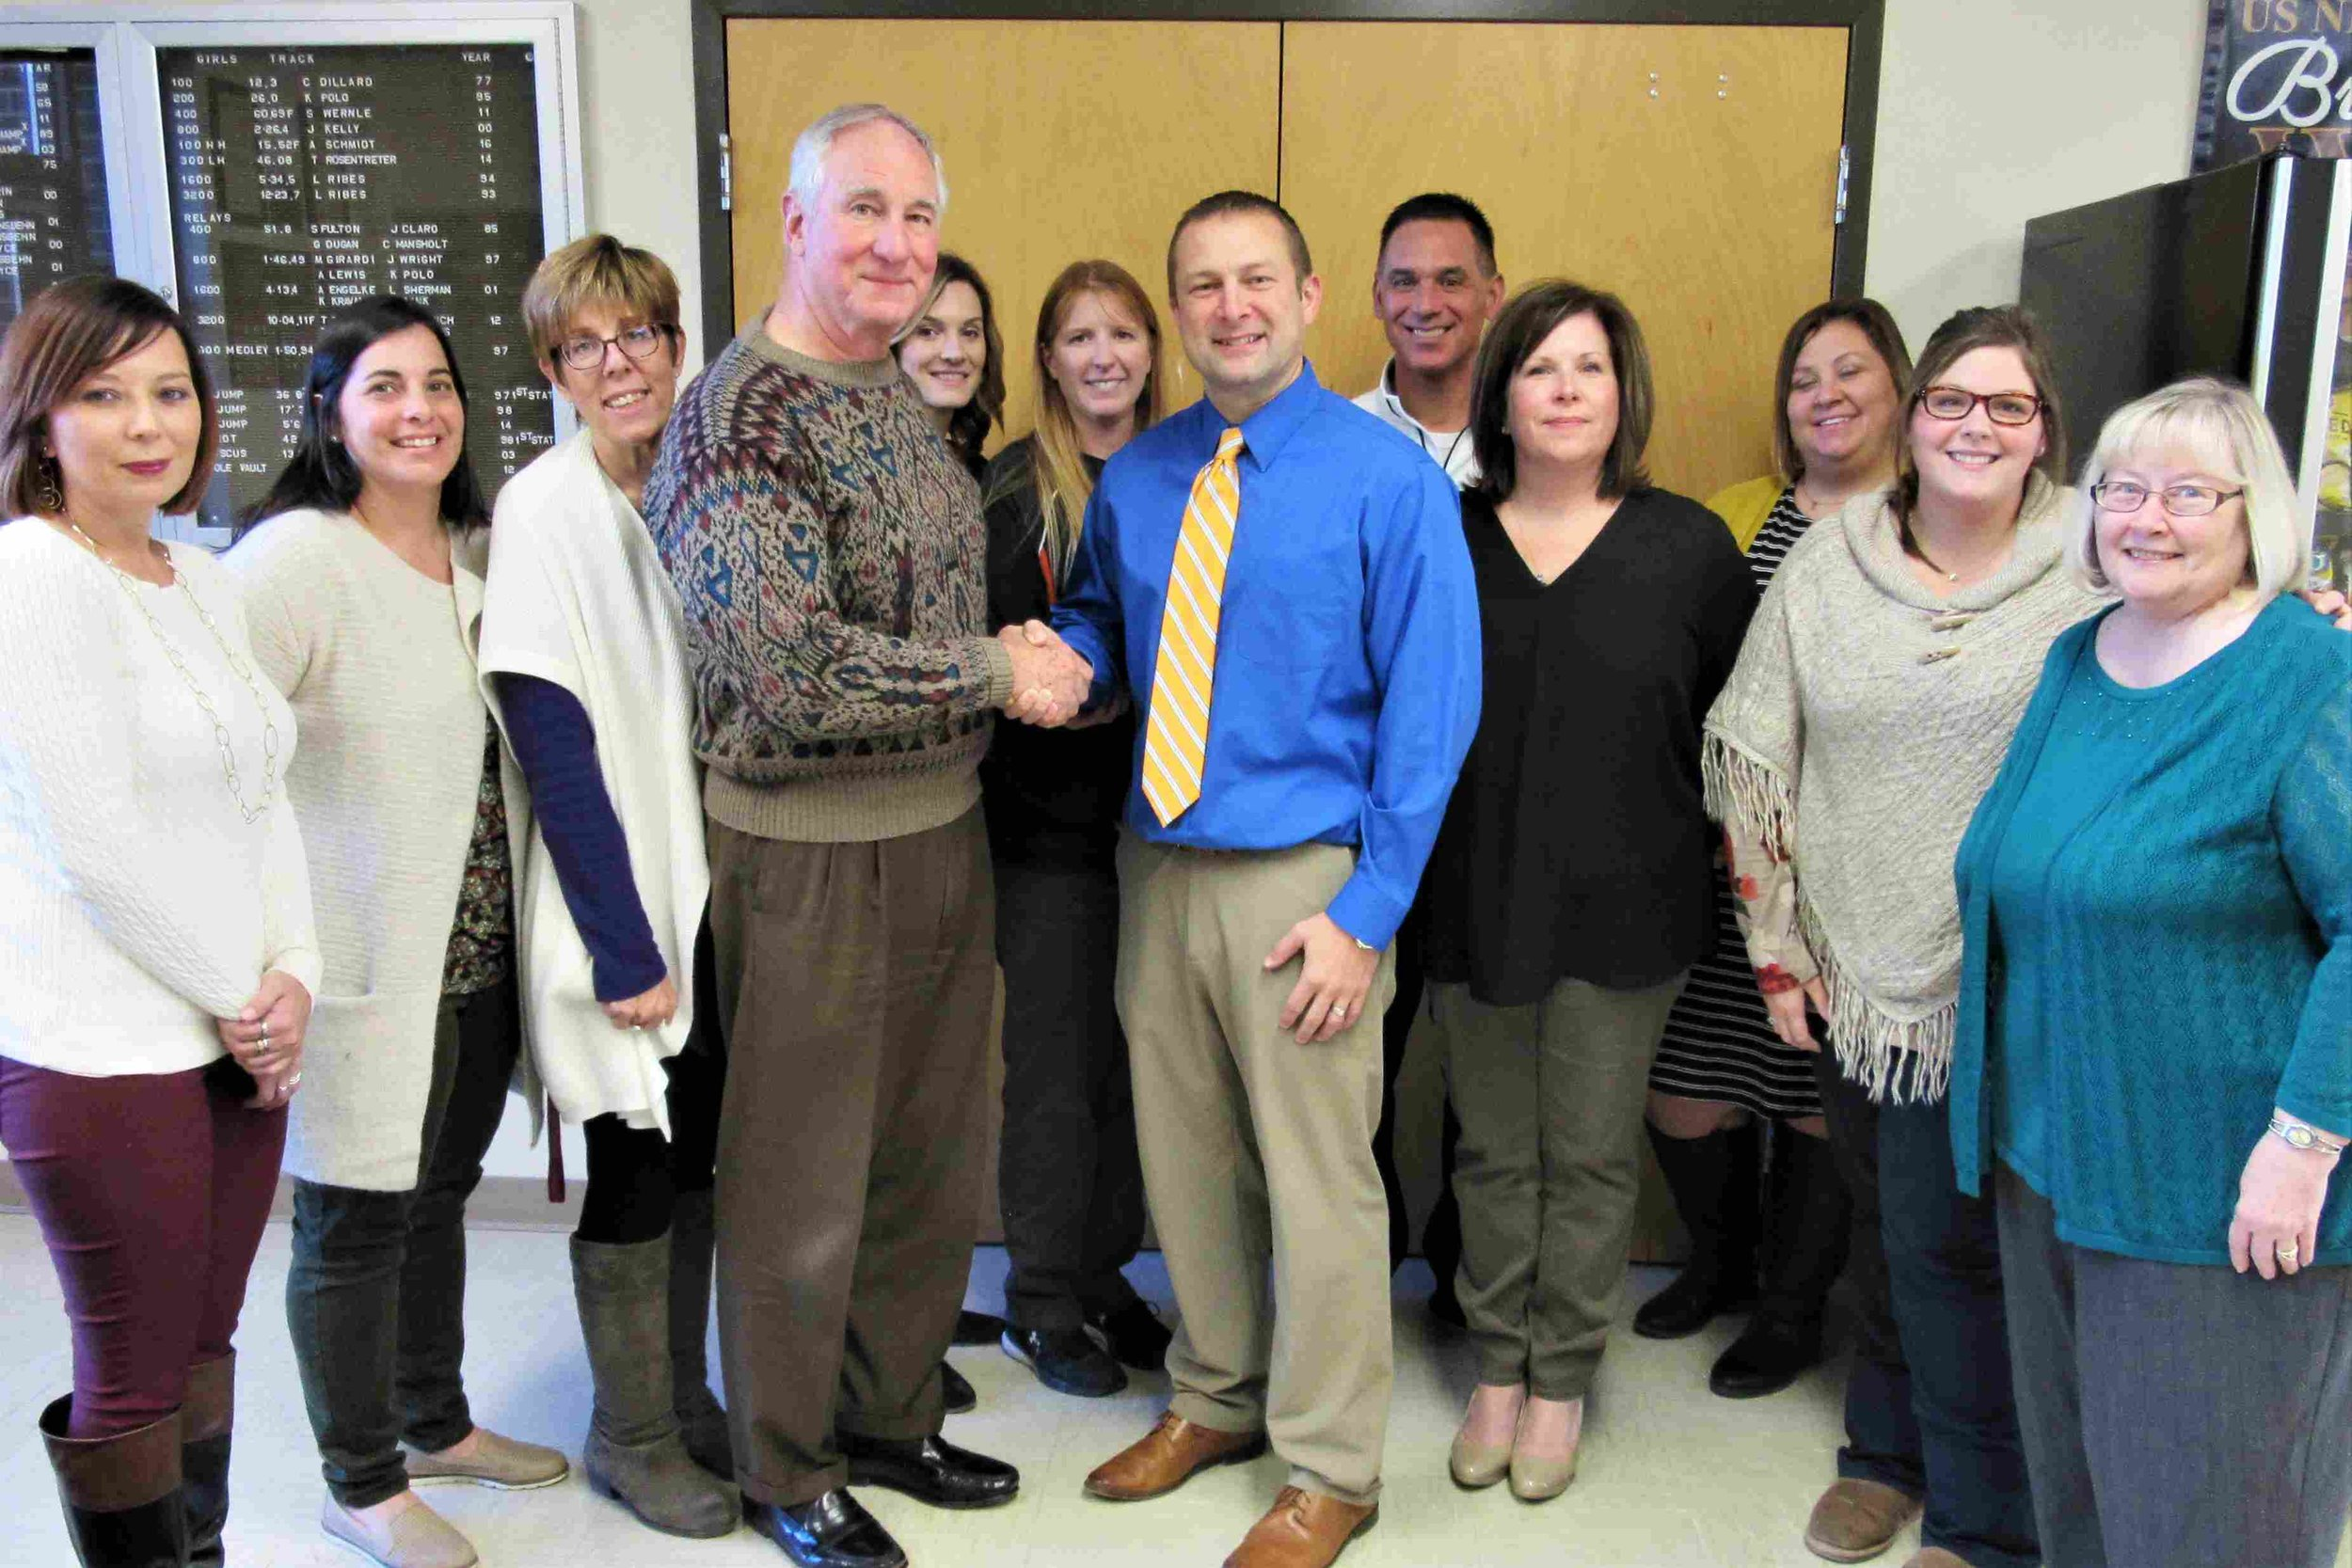 (From left to right) Mary Kirk (Library and Speech), Michelle Smith (Biology/Science), Katie Prange (English),John Fassero, Jr., President of The Partnership, Nikki Brawner (Art), Holley McFarland (Physical Education), Rob Macias (Physical Education), Mr. Shane Owsley (High School Principal), Amy Goldasich (English), Andrea Williamson (English/Drama Club), Nickie Stoecker (Yearbook), Nanci Grandone, founder and past president of The Partnership